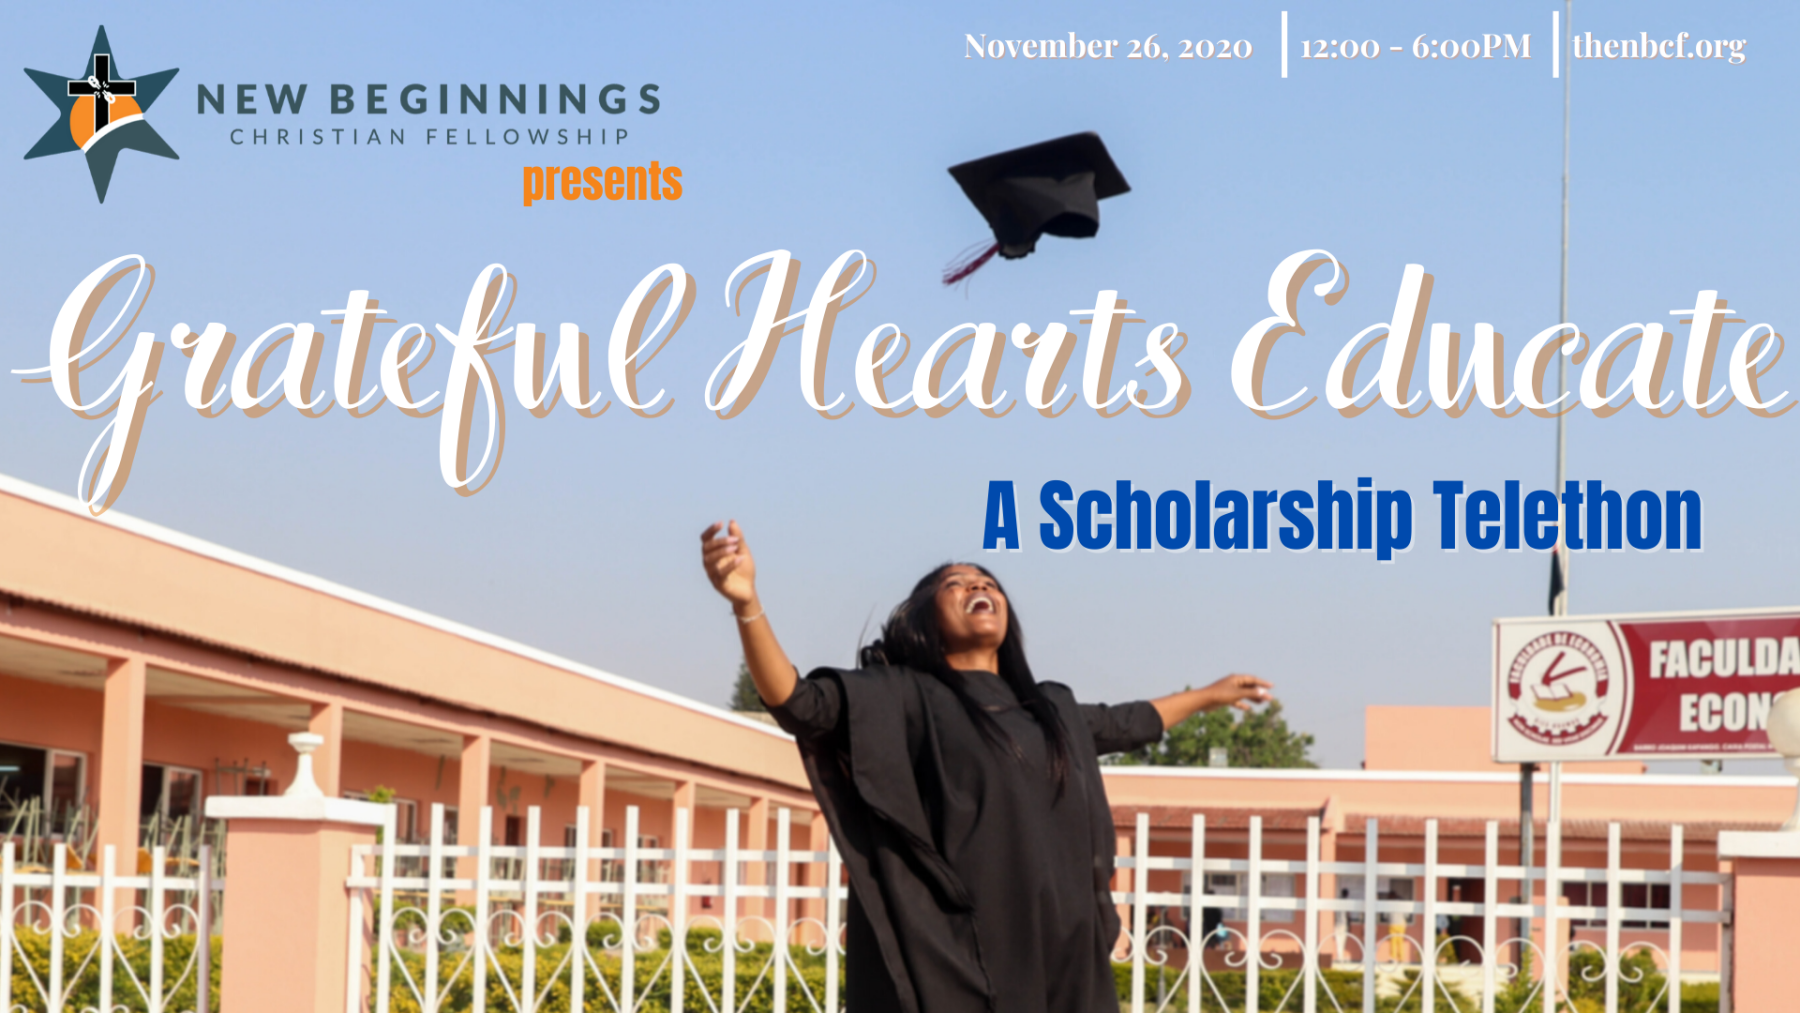 Grateful Hearts Educate - Scholarship Telethon